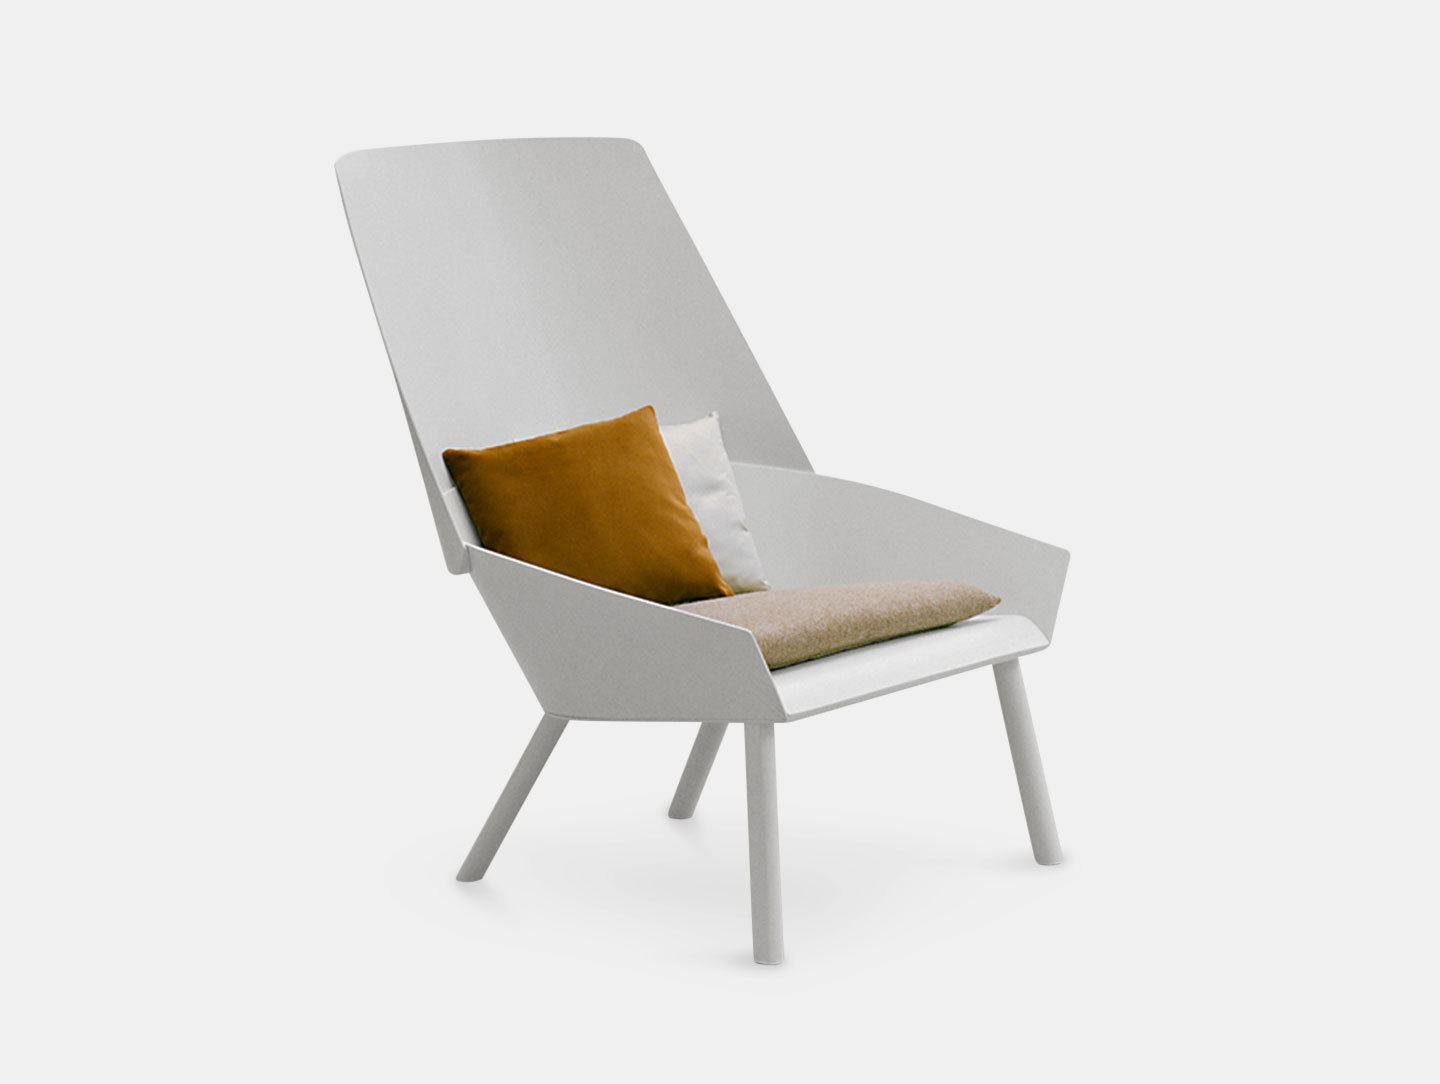 Eugene Lounge chair  image 2